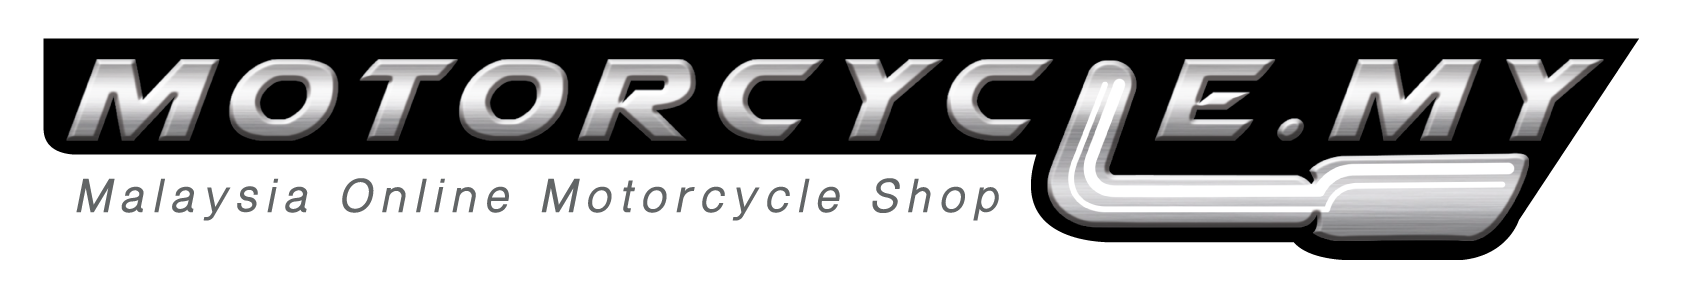 My Motorcycle - The Largest Online Motorcycle Shop in Malaysia